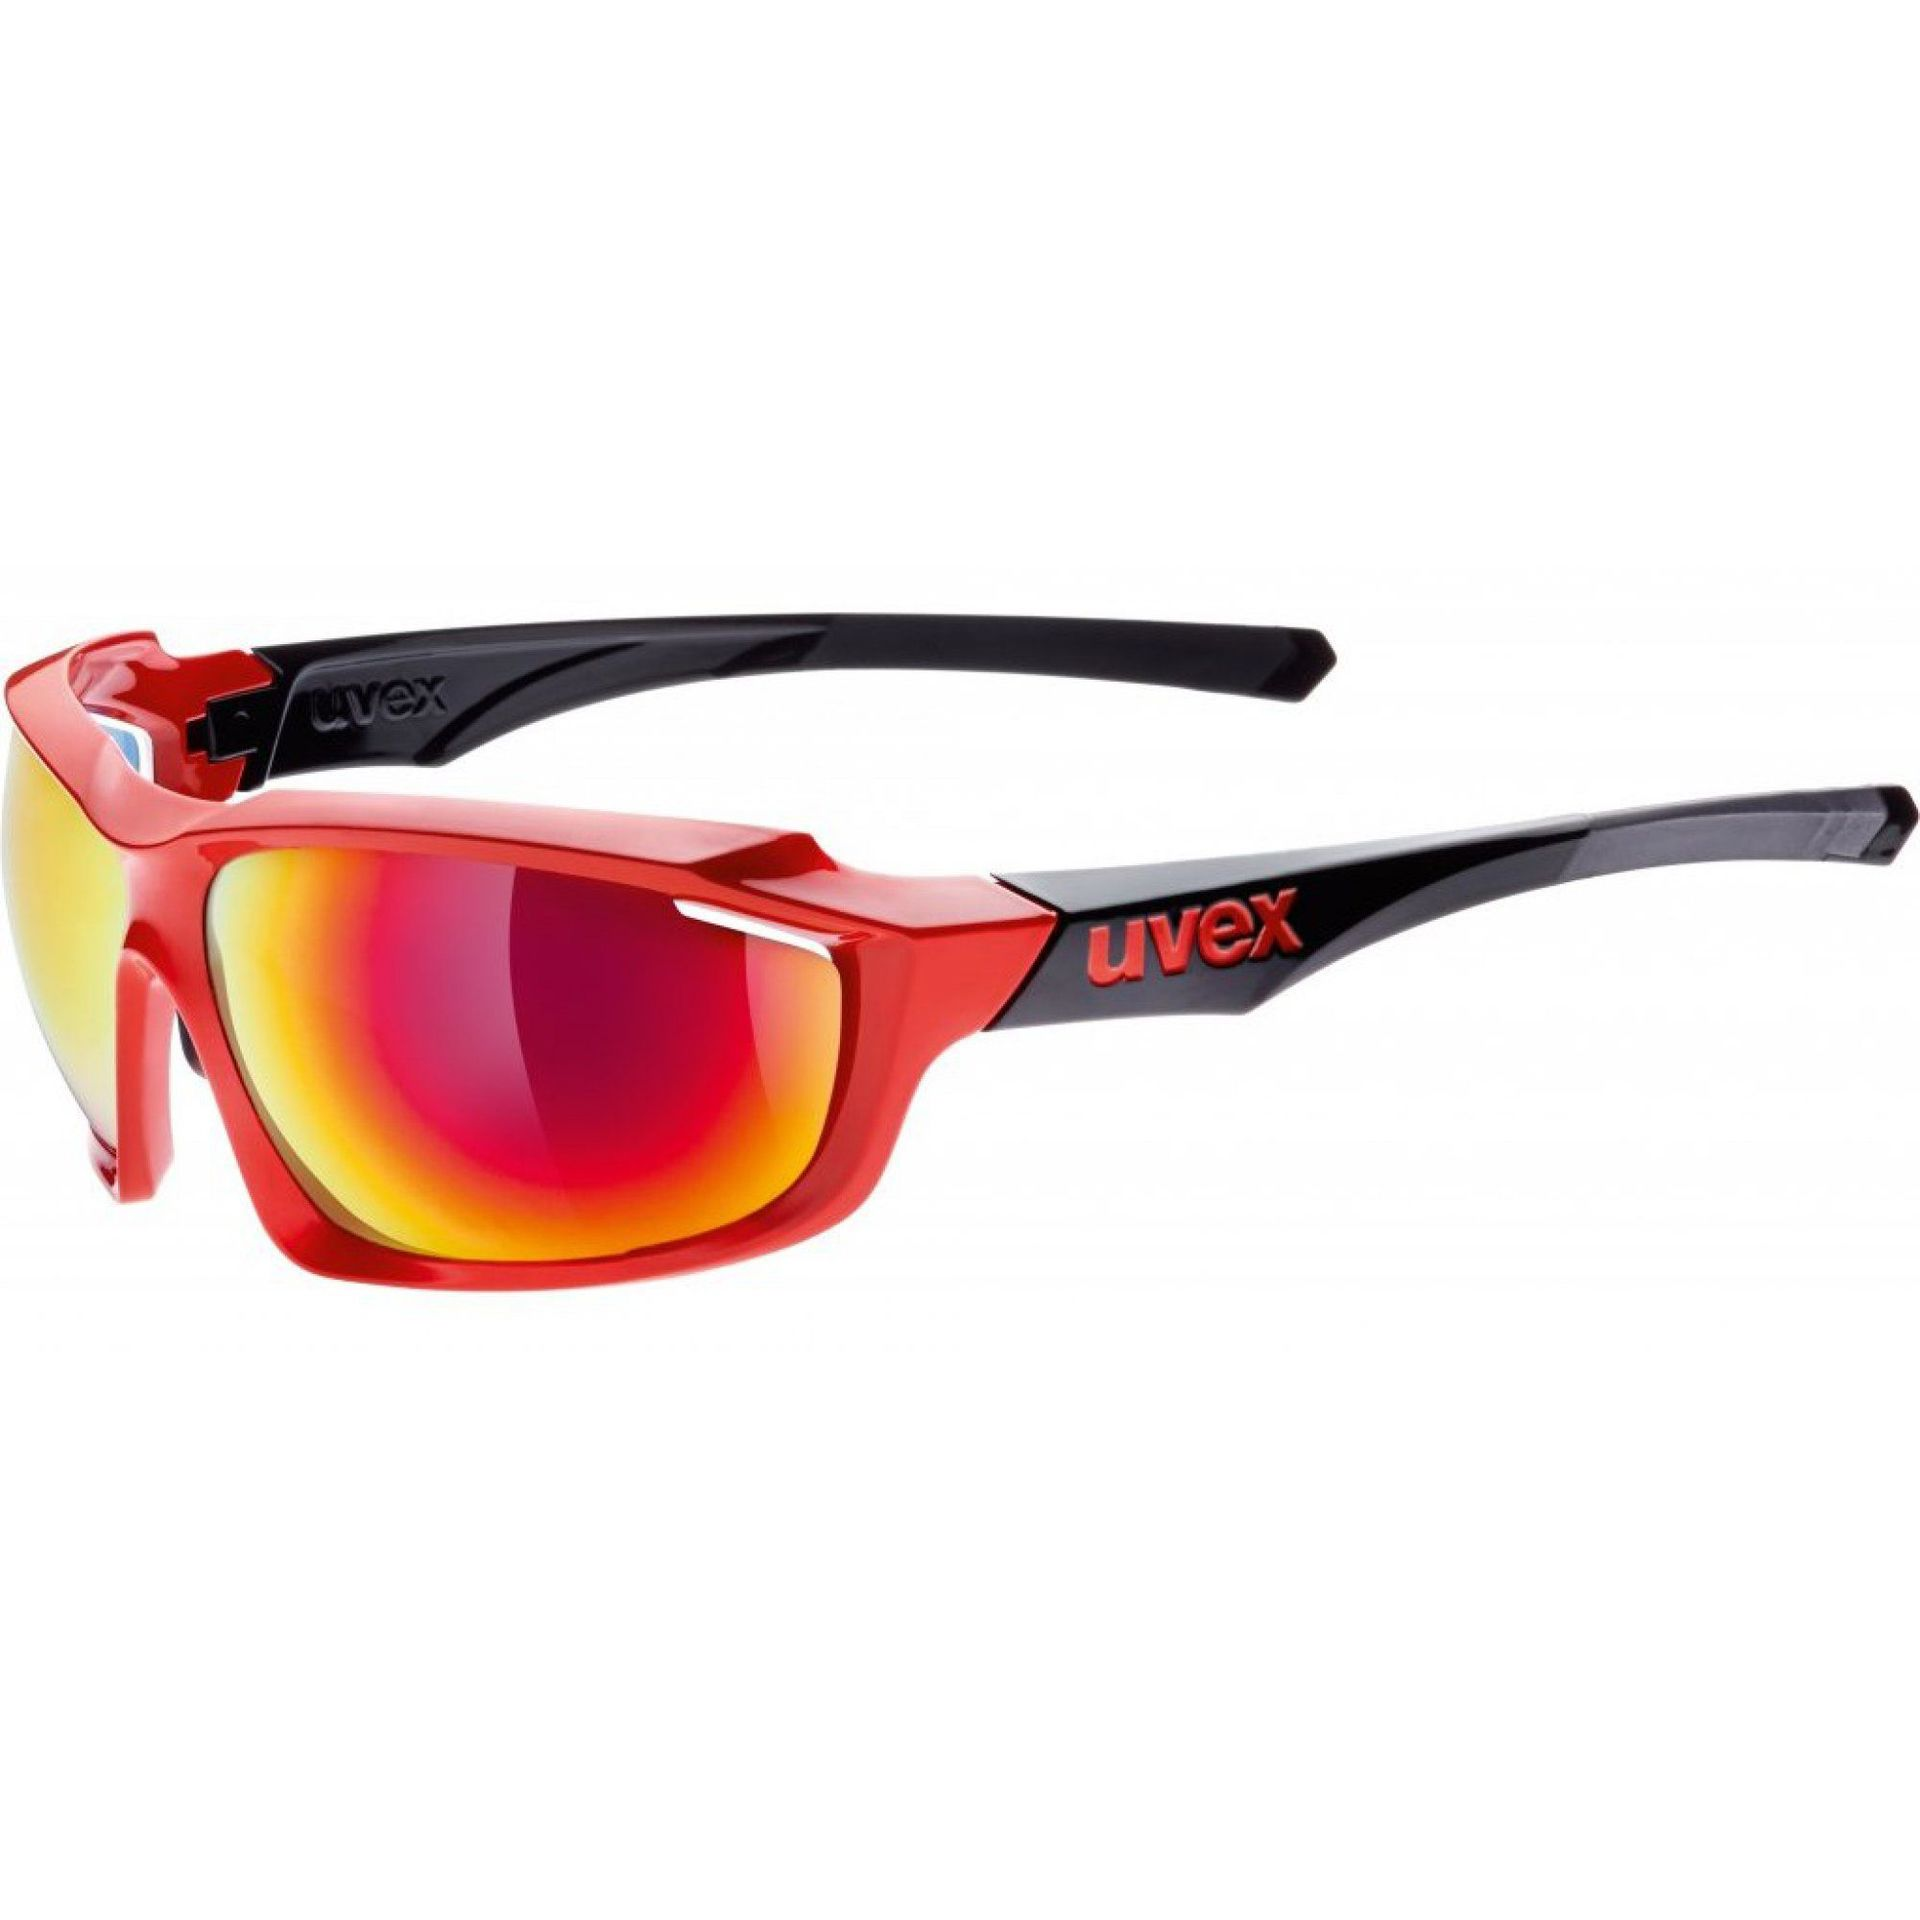 OKULARY UVEX SPORTSTYLE 710 RED BLACK